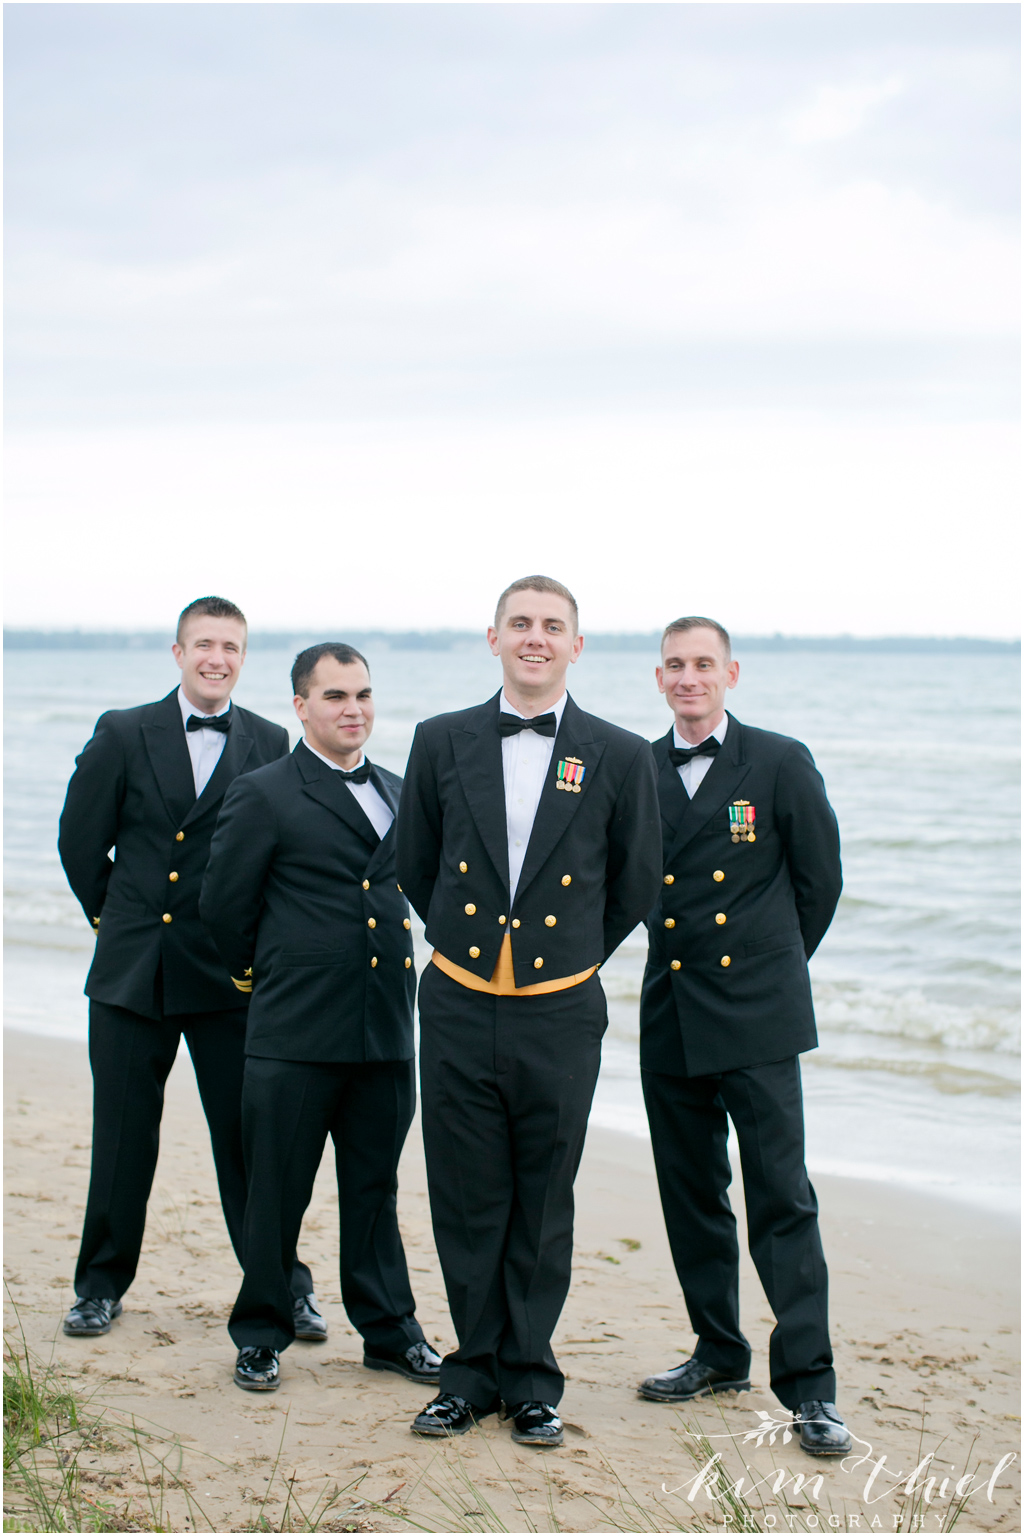 Kim-Thiel-Photography-Private-Door-County-Beach-Wedding-51